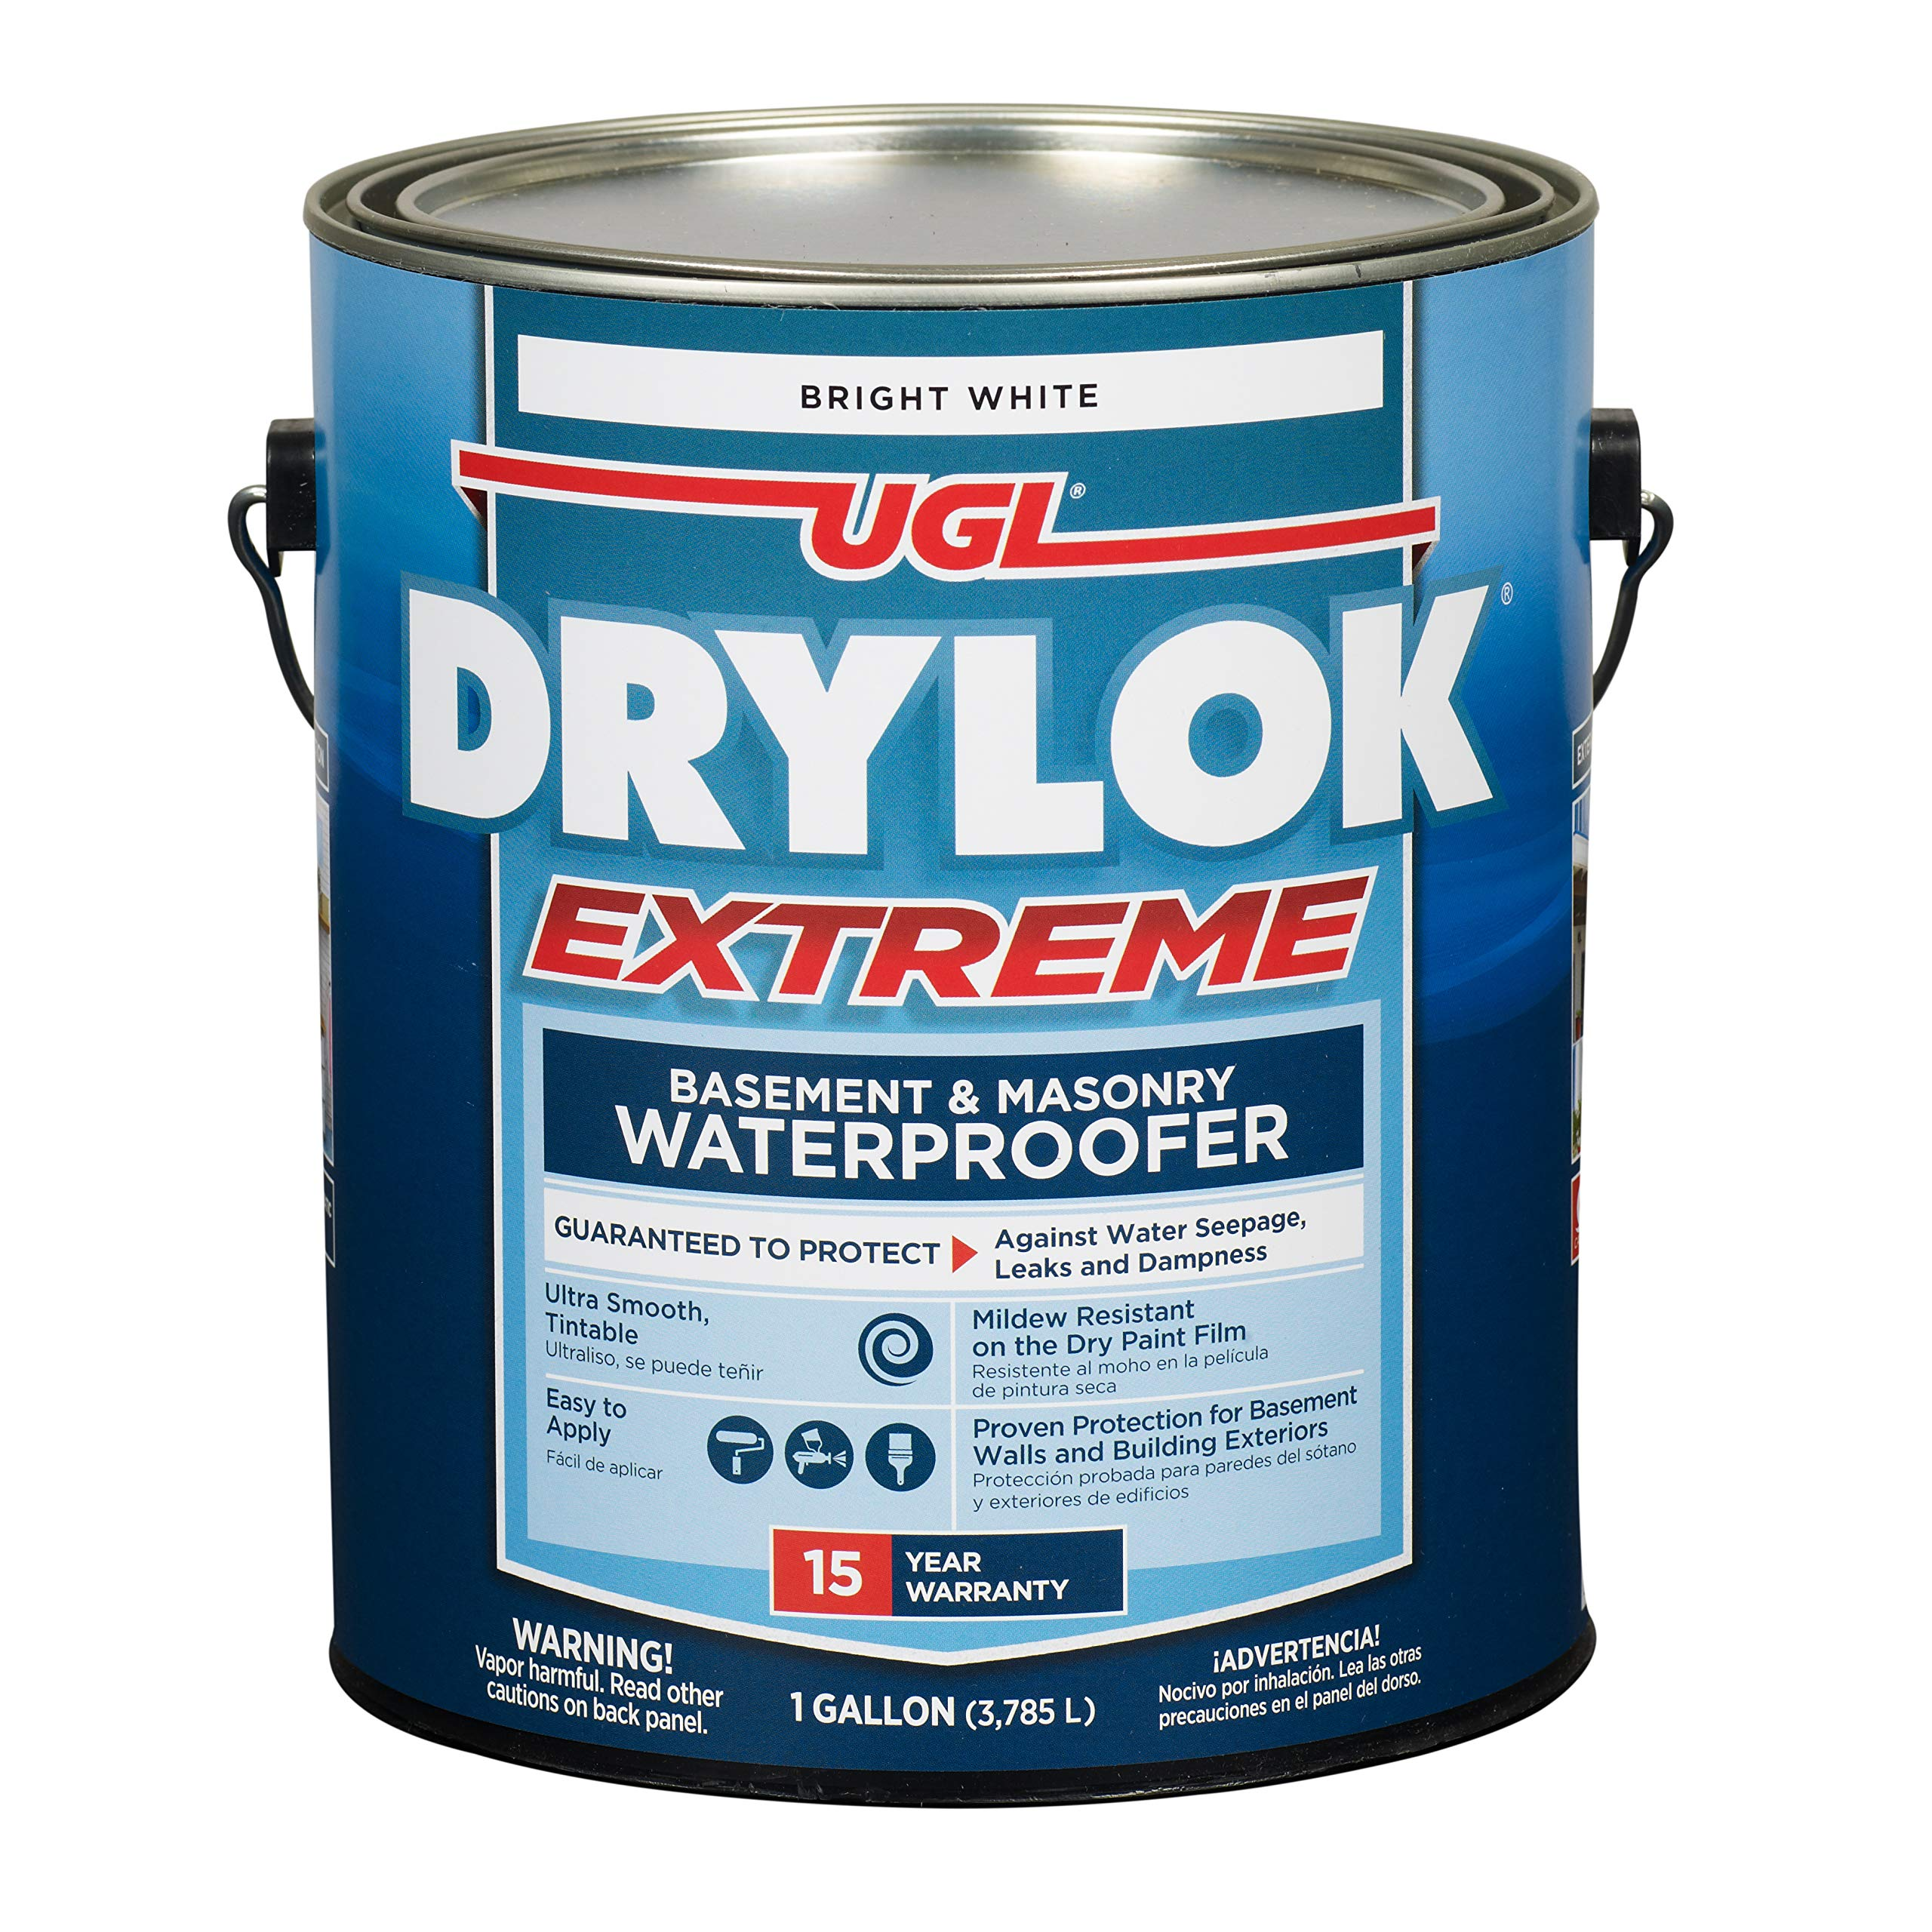 Drylok Drylok-28613 28613 Extreme Latex Masonry Waterproofer Interior/Exterior Smooth Finish, White